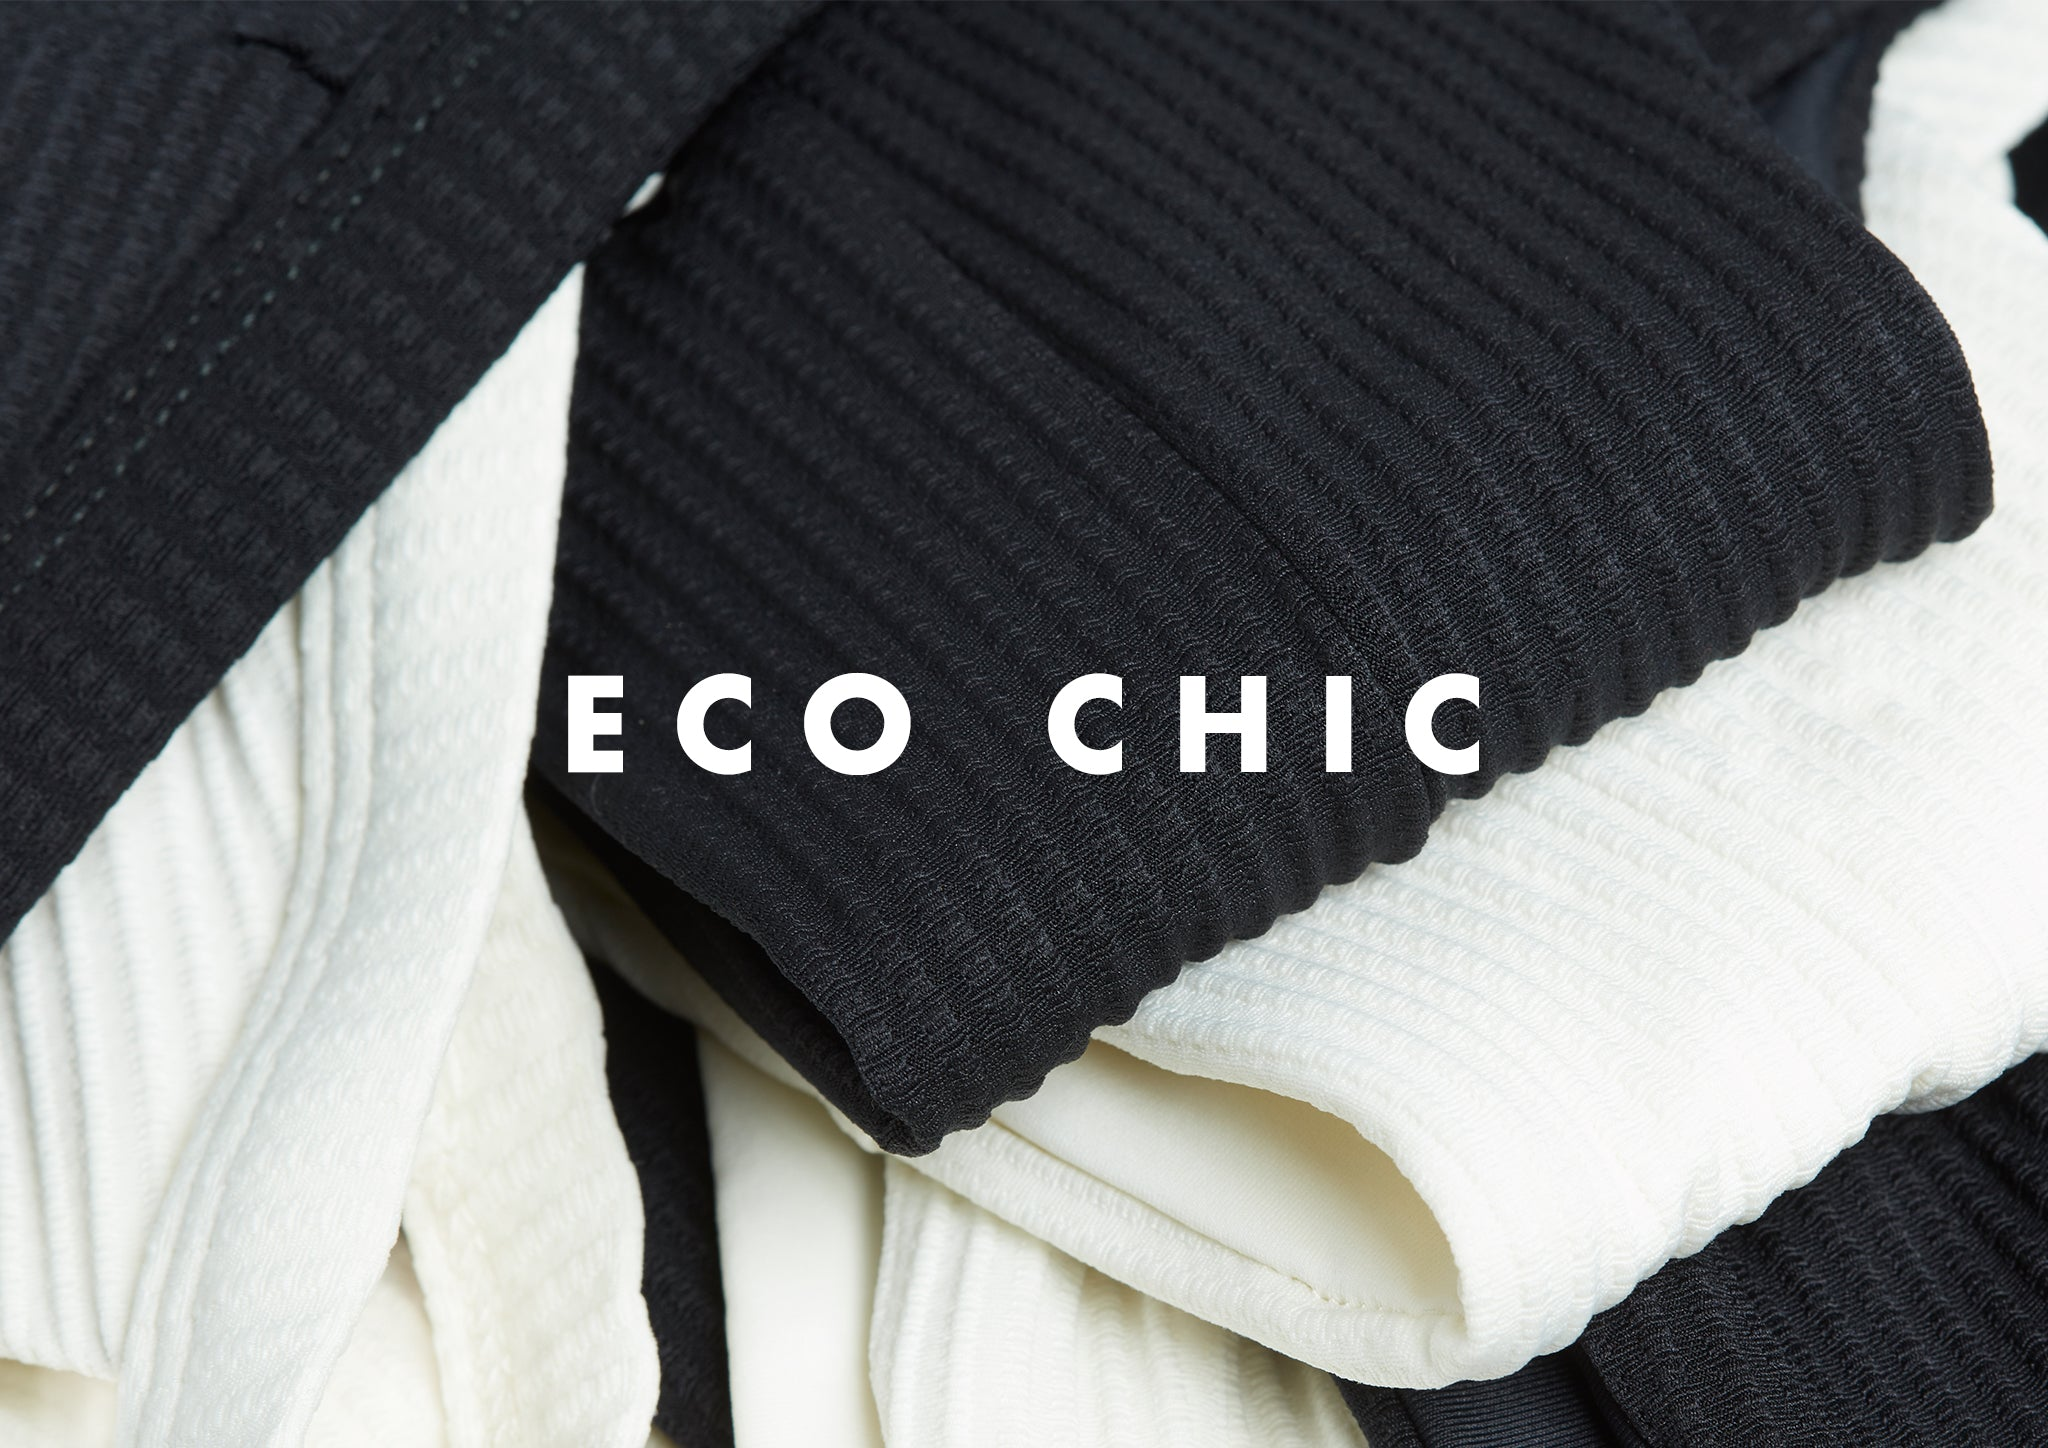 close up image of L*Space eco chic sustainable textured swimsuits